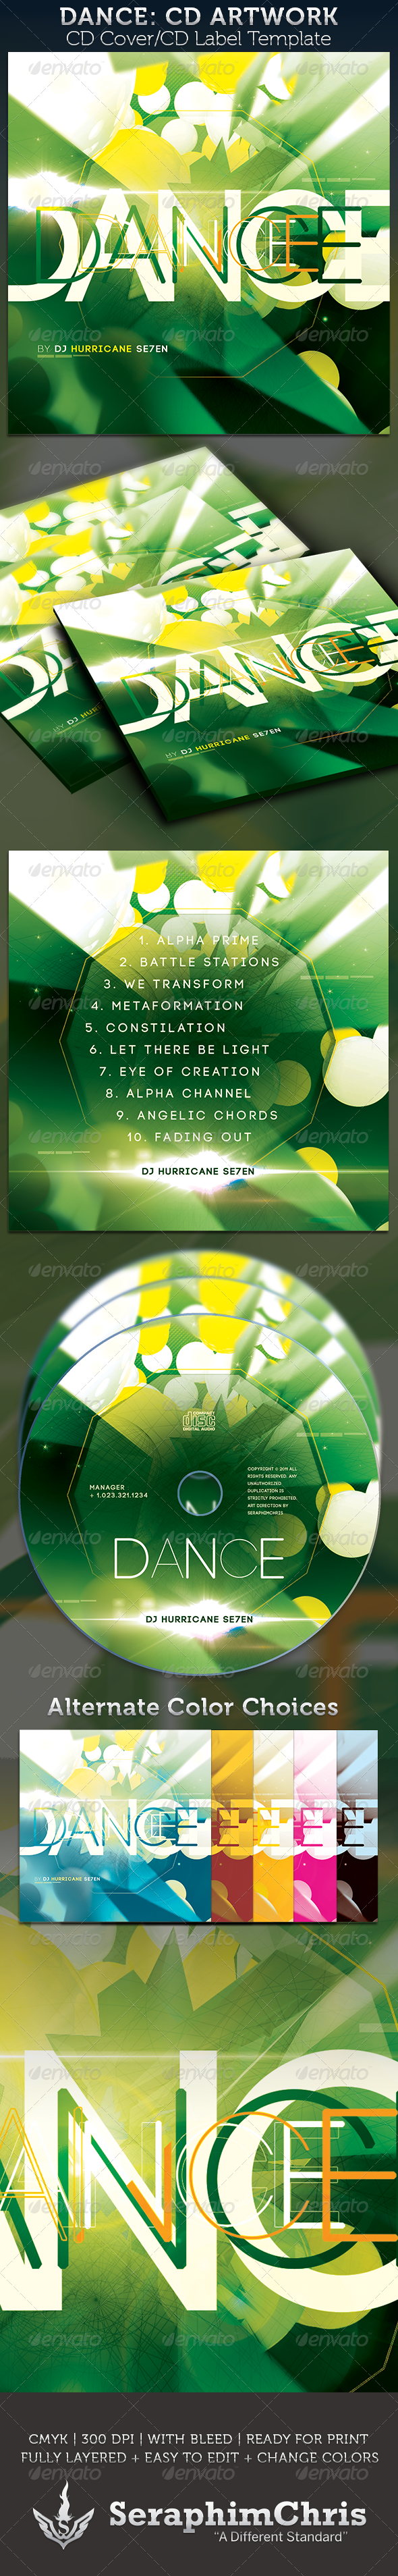 Dance: CD Cover Artwork Template - CD & DVD Artwork Print Templates